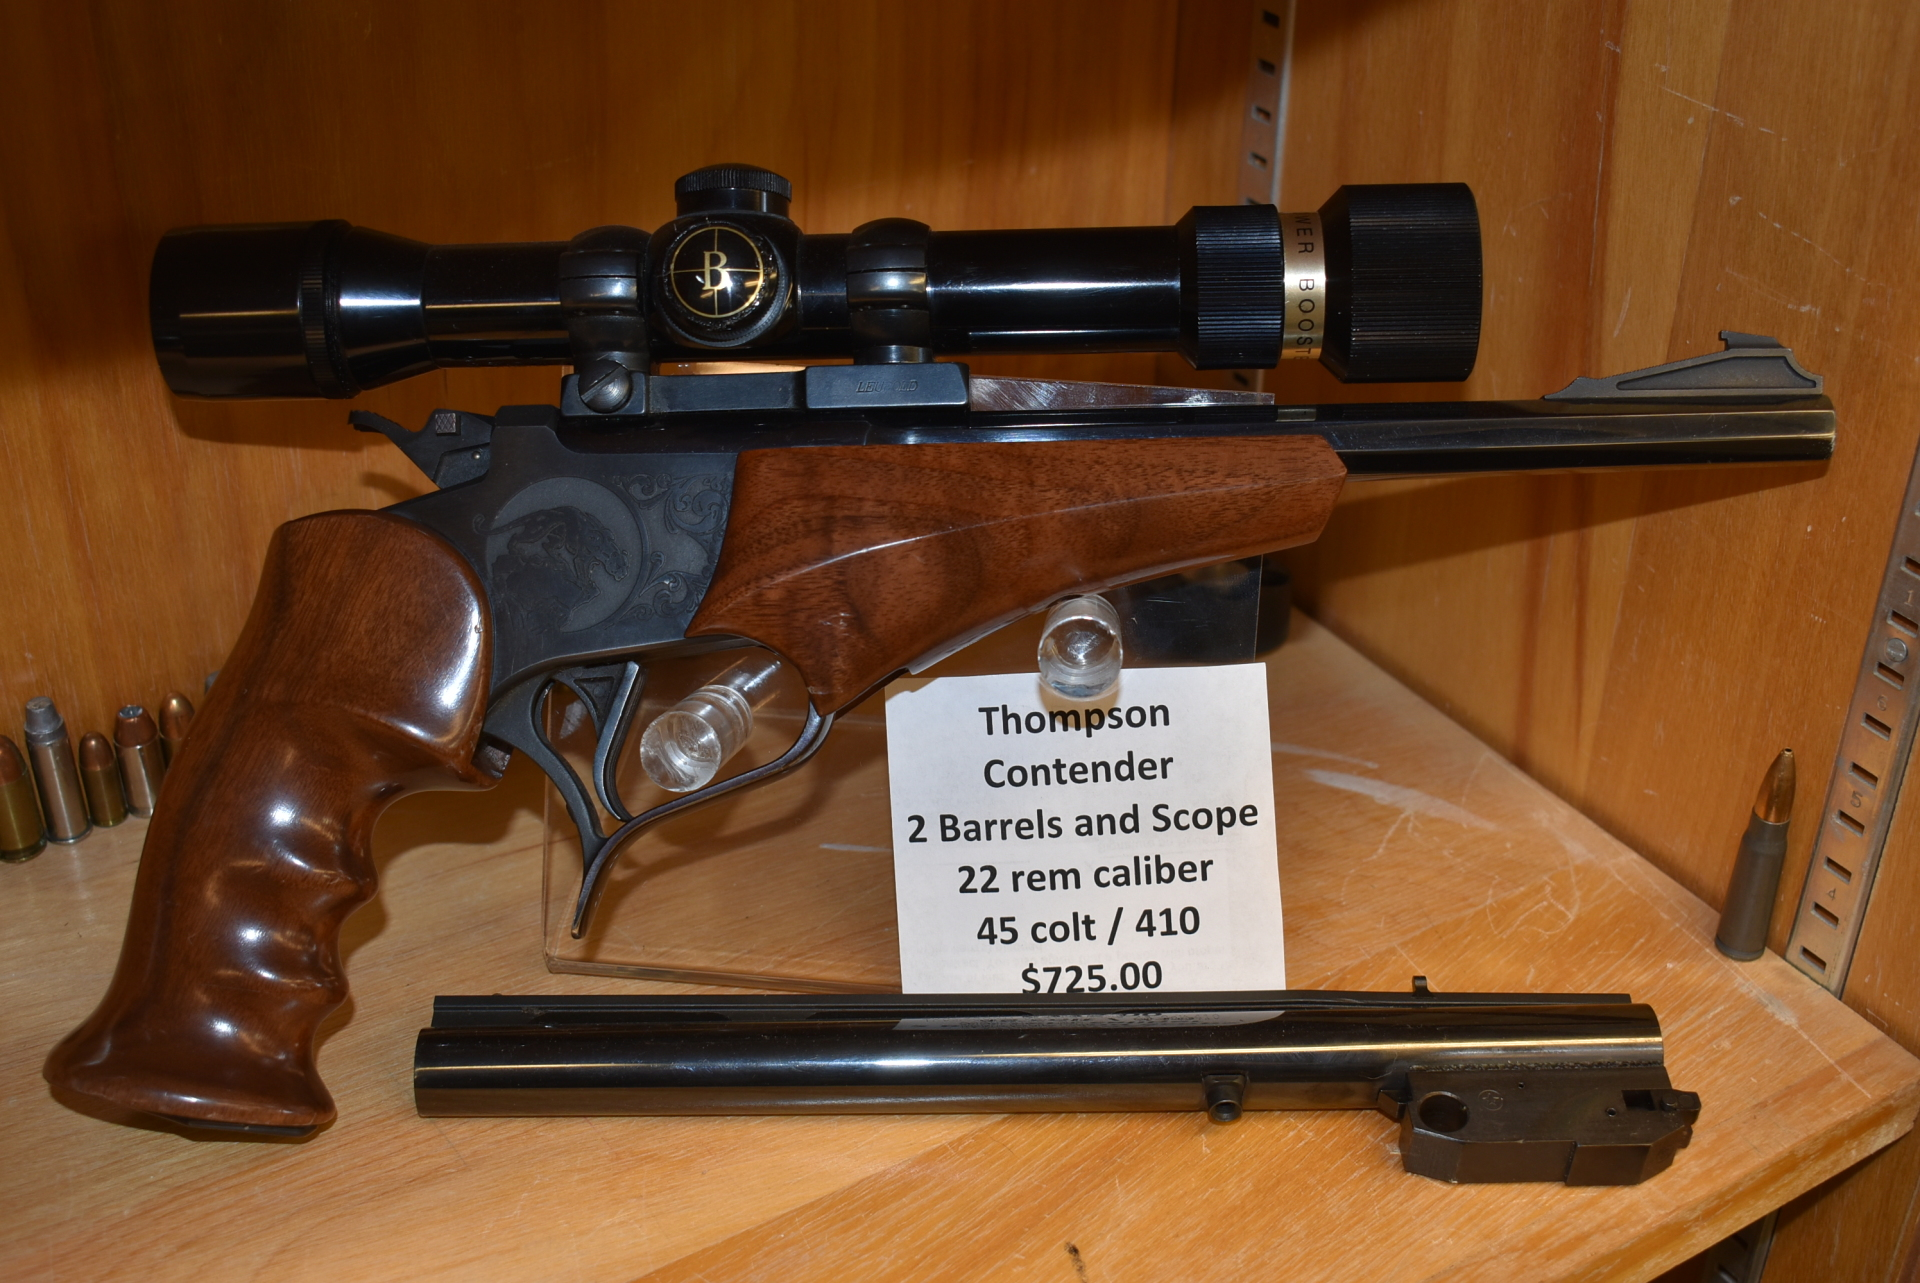 Thompson Contender 2 Barrels, Scope